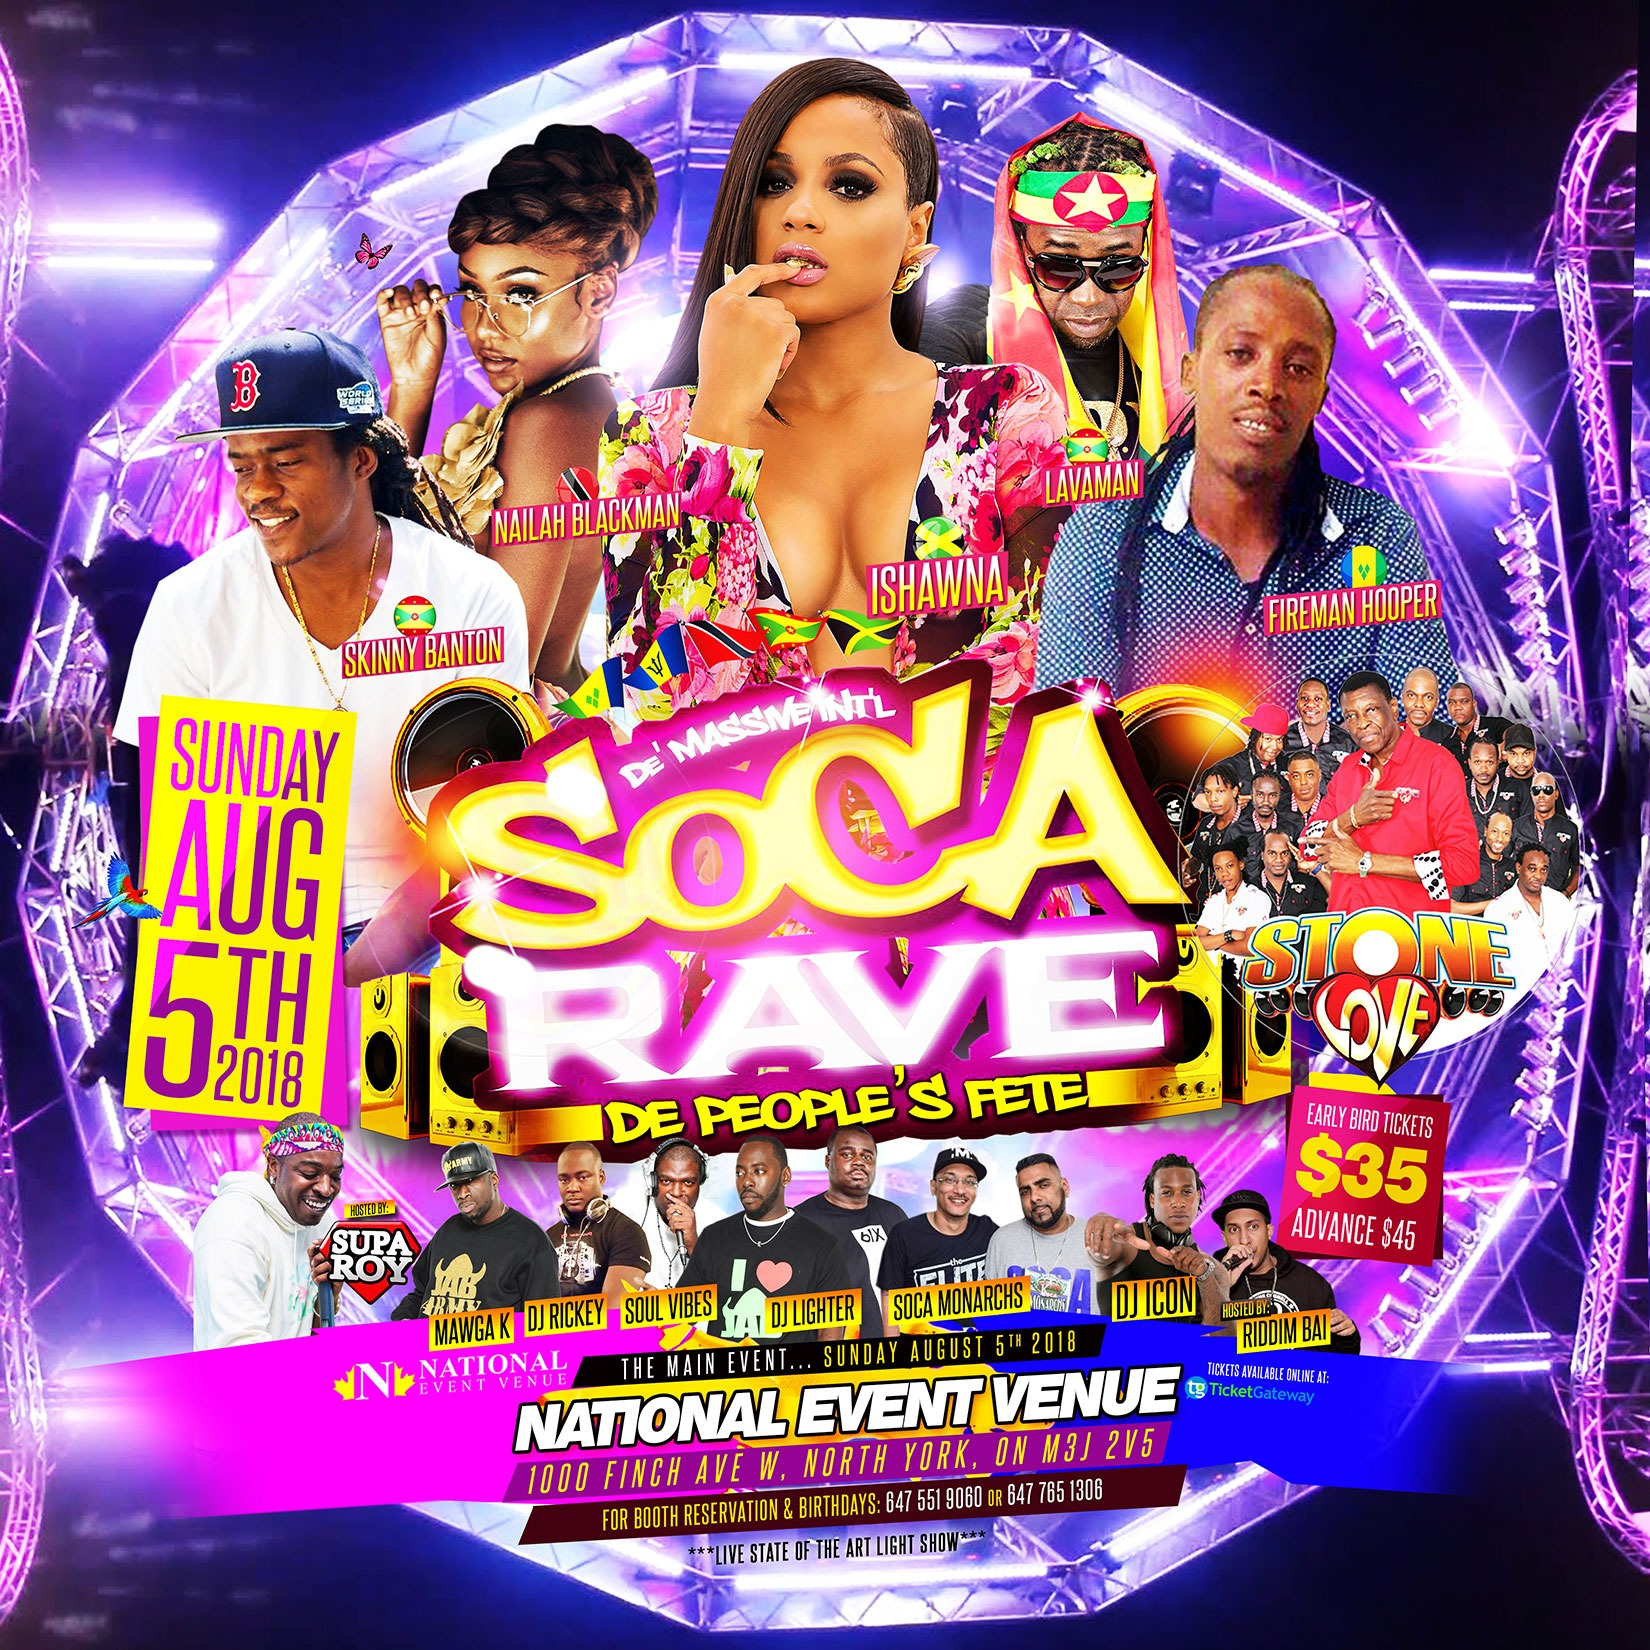 SOCA RAVE: De People's FETE | The Biggest Fete Caribana Sunday